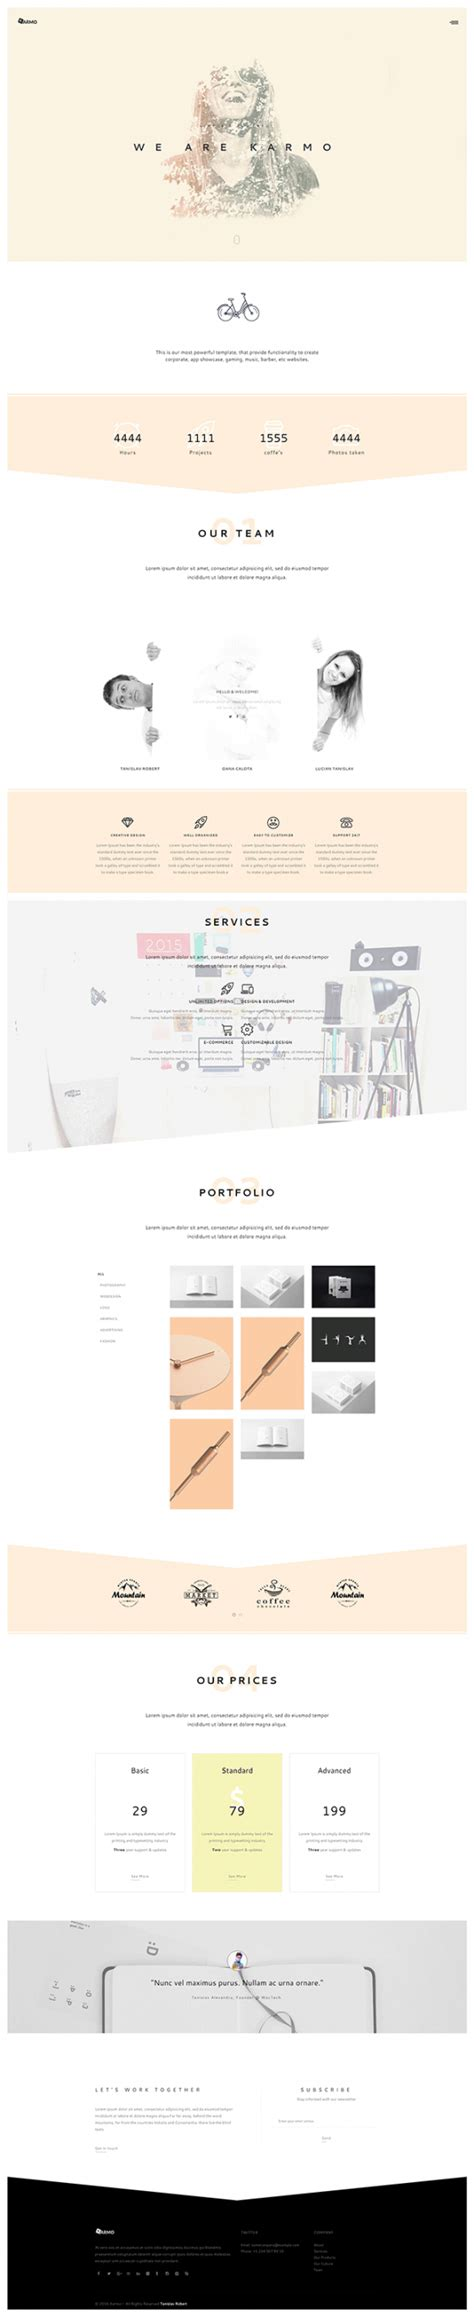 Karmo A Free Html Templates For Agencies And Creatives Freebiesbug Website Code Template